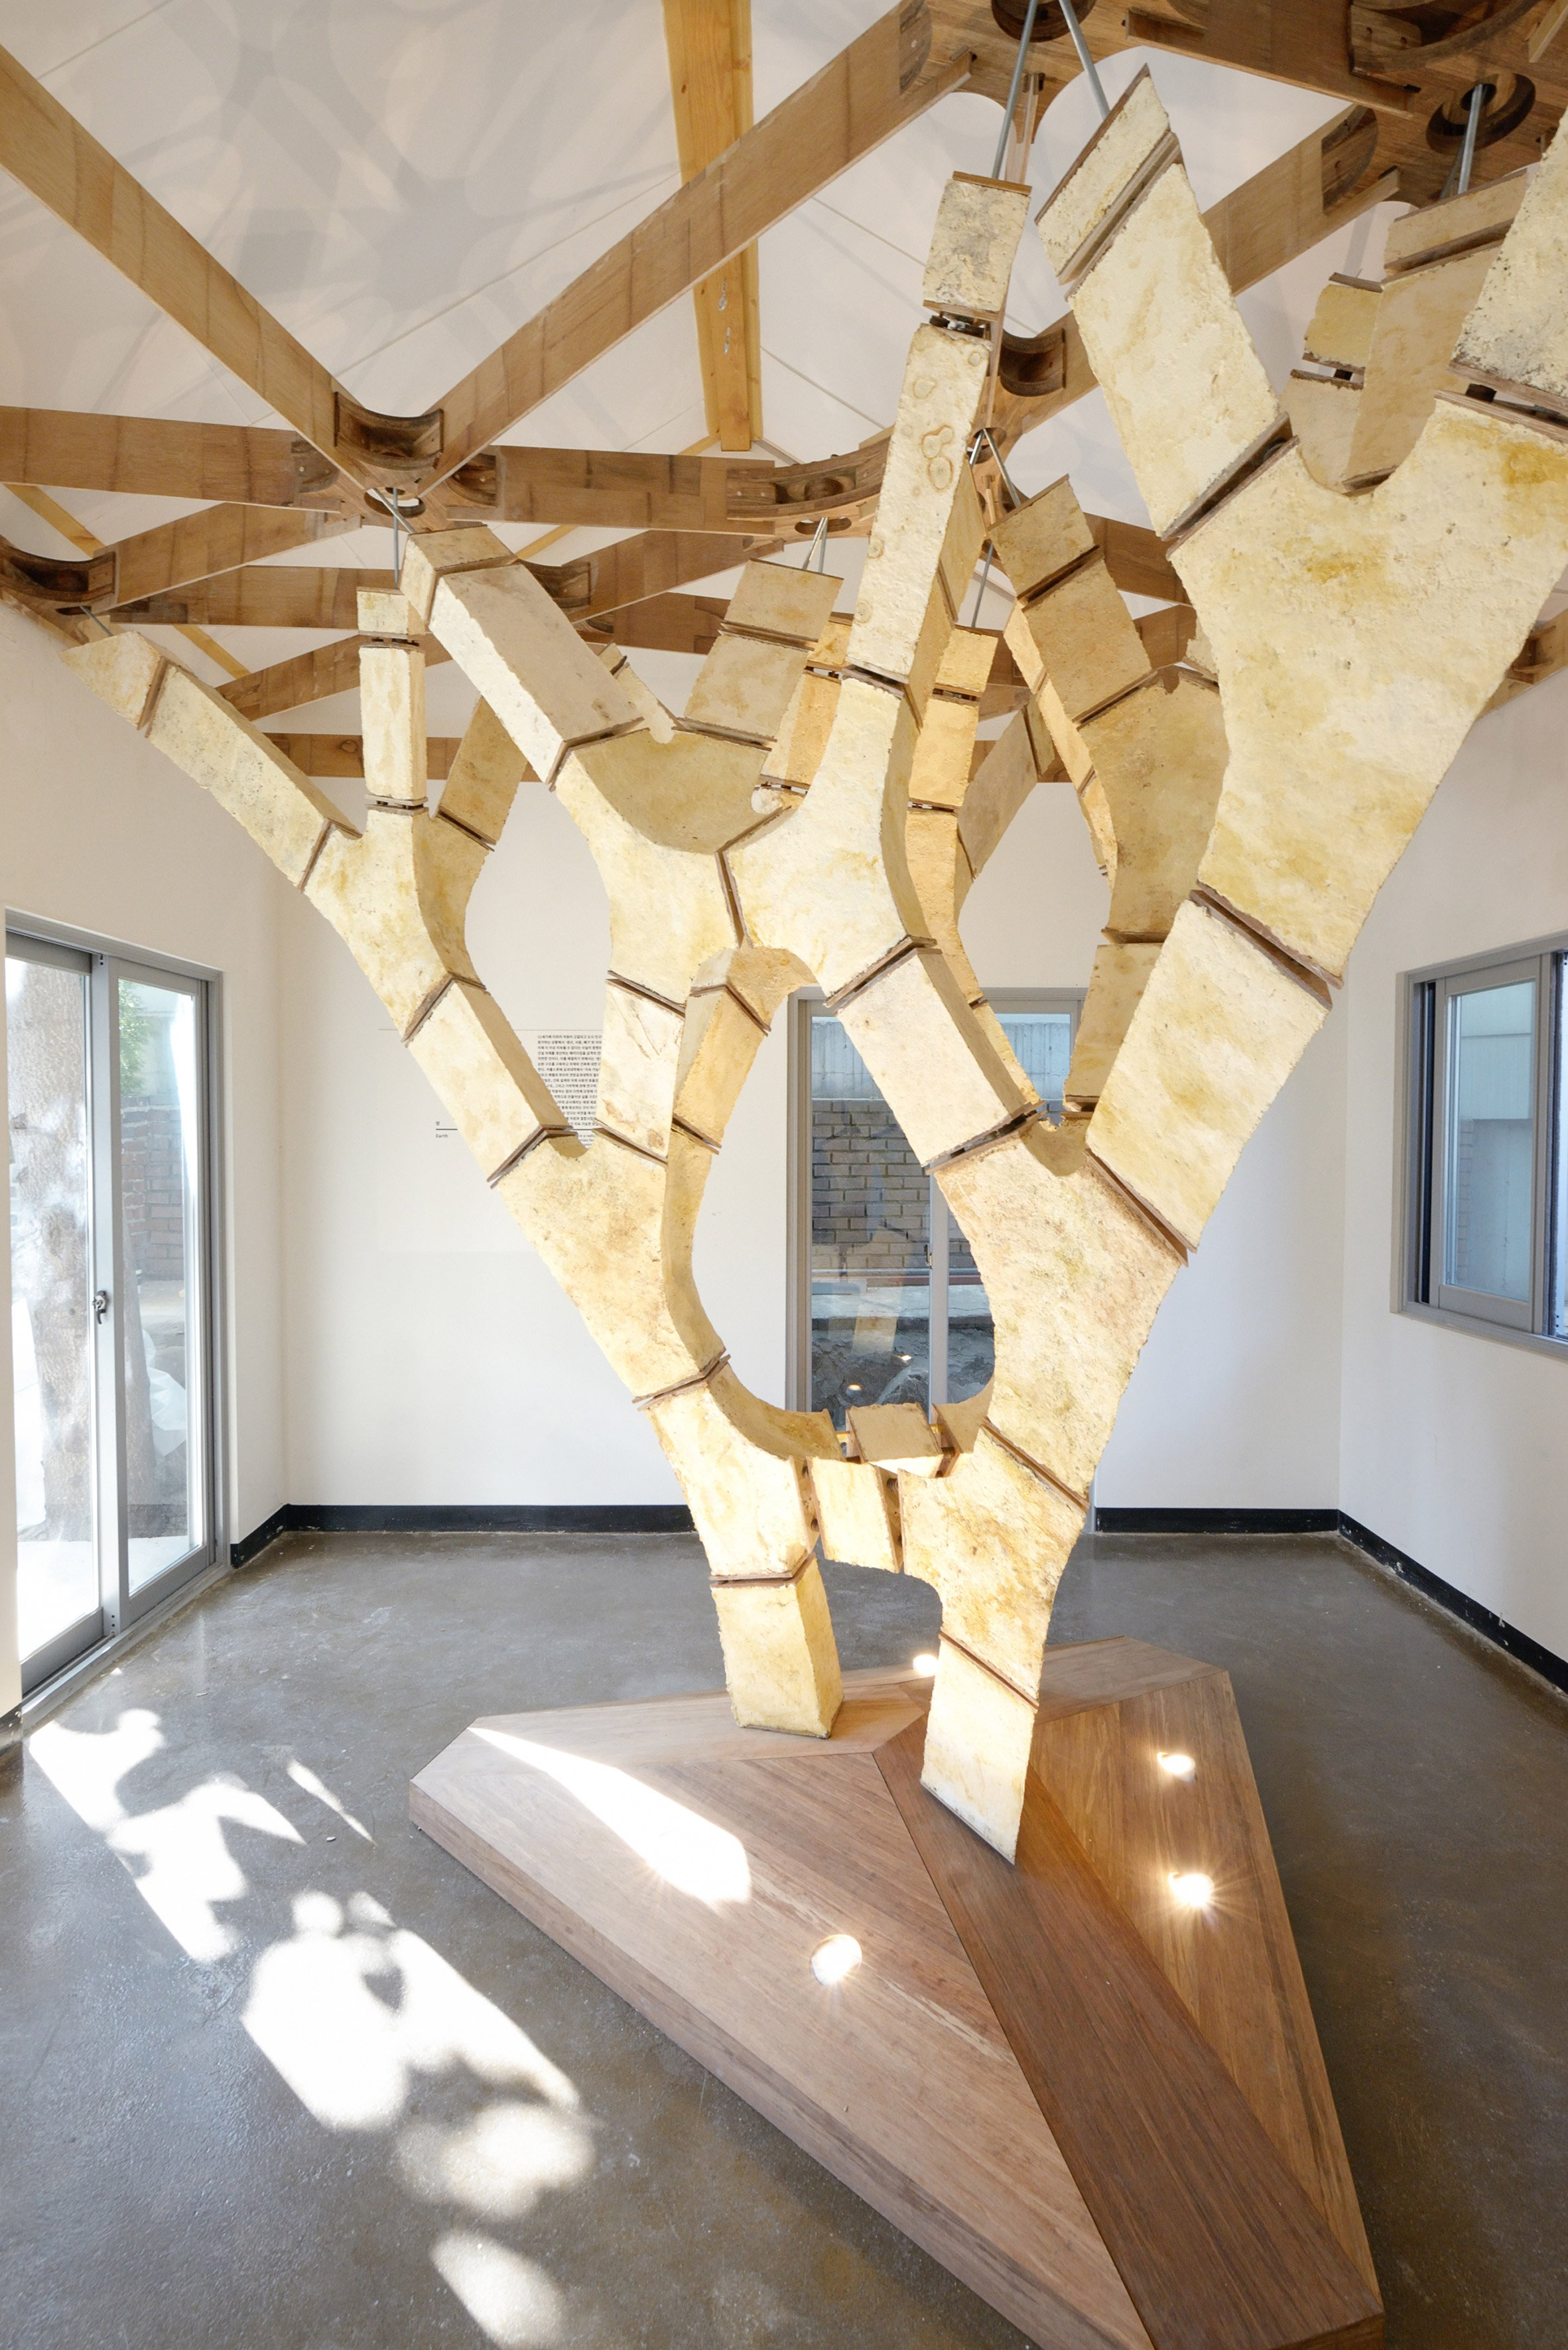 Tree-shaped structure shows how mushroom roots could be used to create buildings